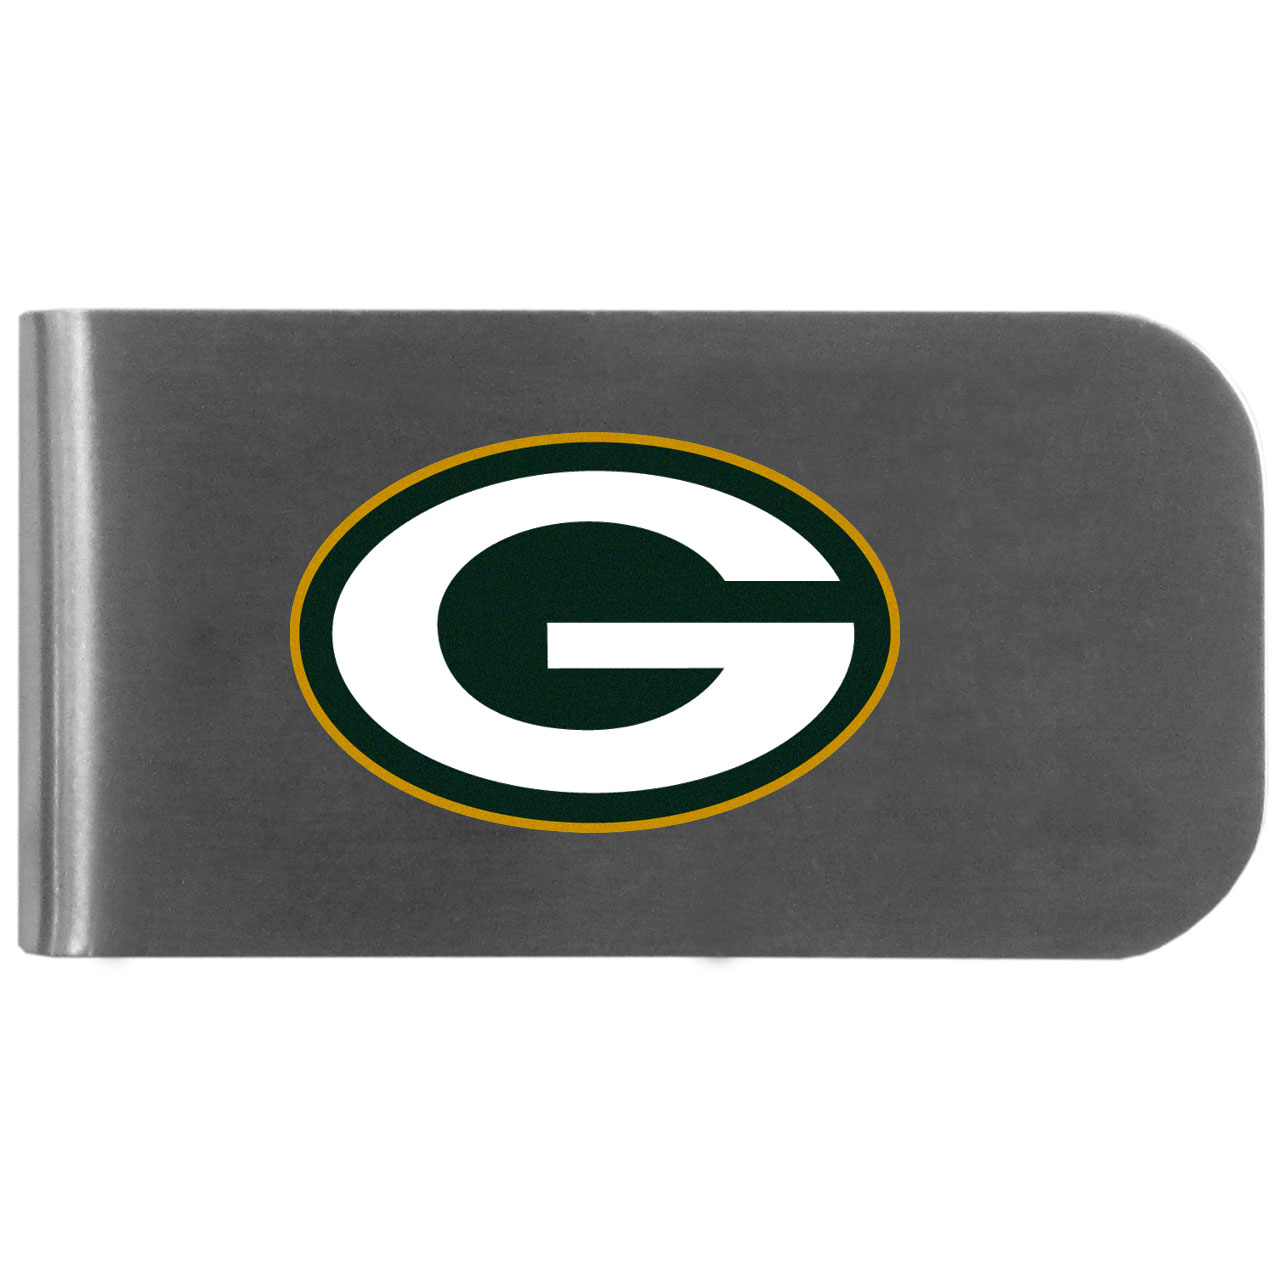 Green Bay Packers Logo Bottle Opener Money Clip - This unique money clip features a classic, brushed-metal finish with a handy bottle opener feature on the back. The clip has the Green Bay Packers logo expertly printed on the front of the clip.